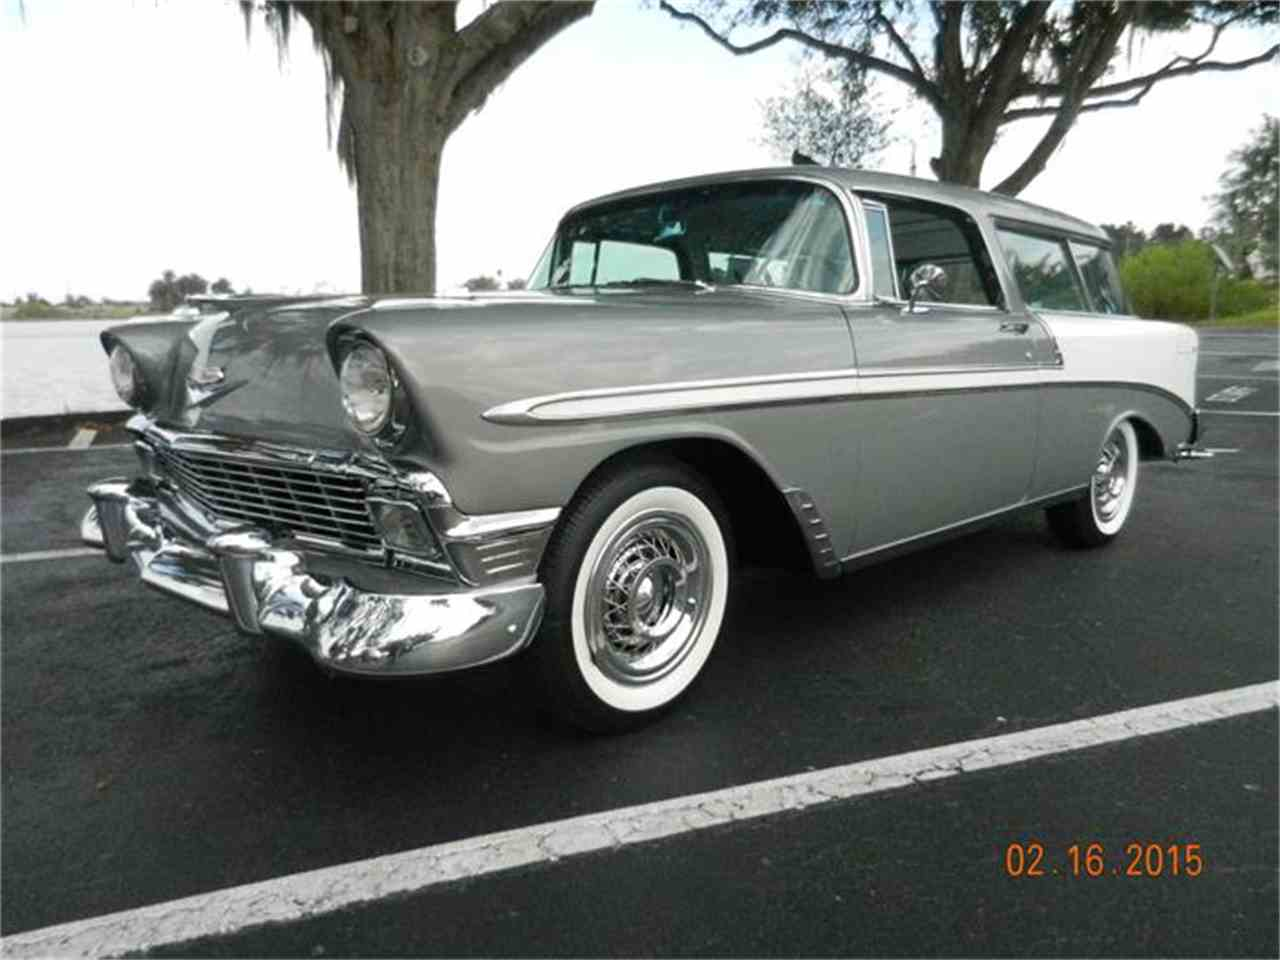 1956 chevrolet bel air for sale classic car liquidators - 1956 Chevrolet Nomad For Sale Cc 632842